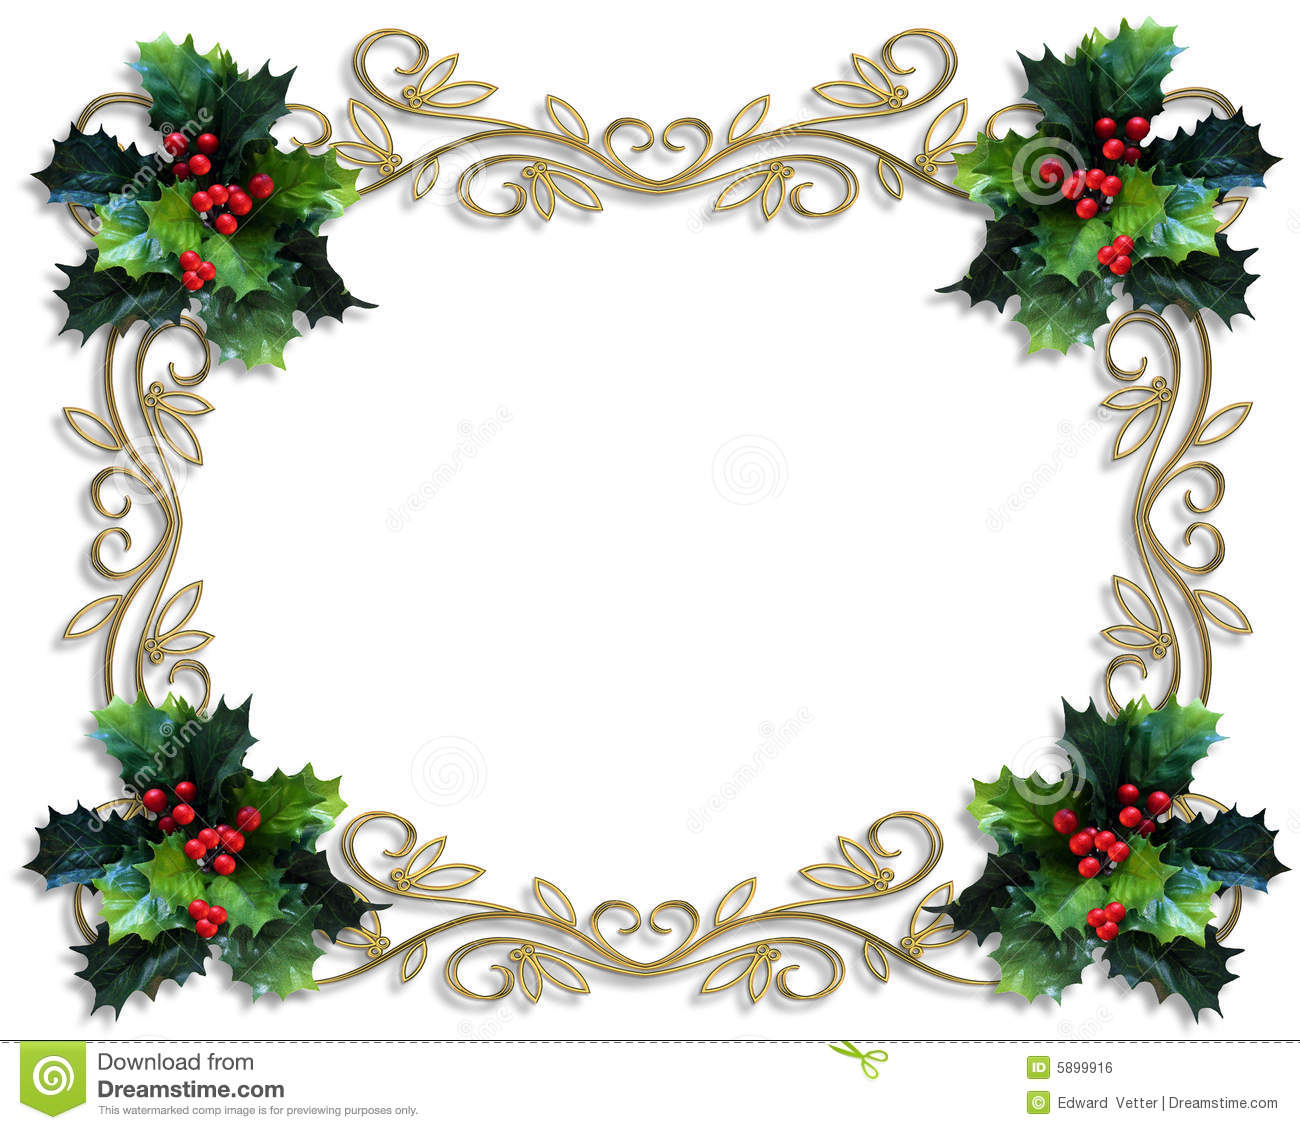 Christmas borders free download clip free Download christmas borders free - ClipartFest clip free